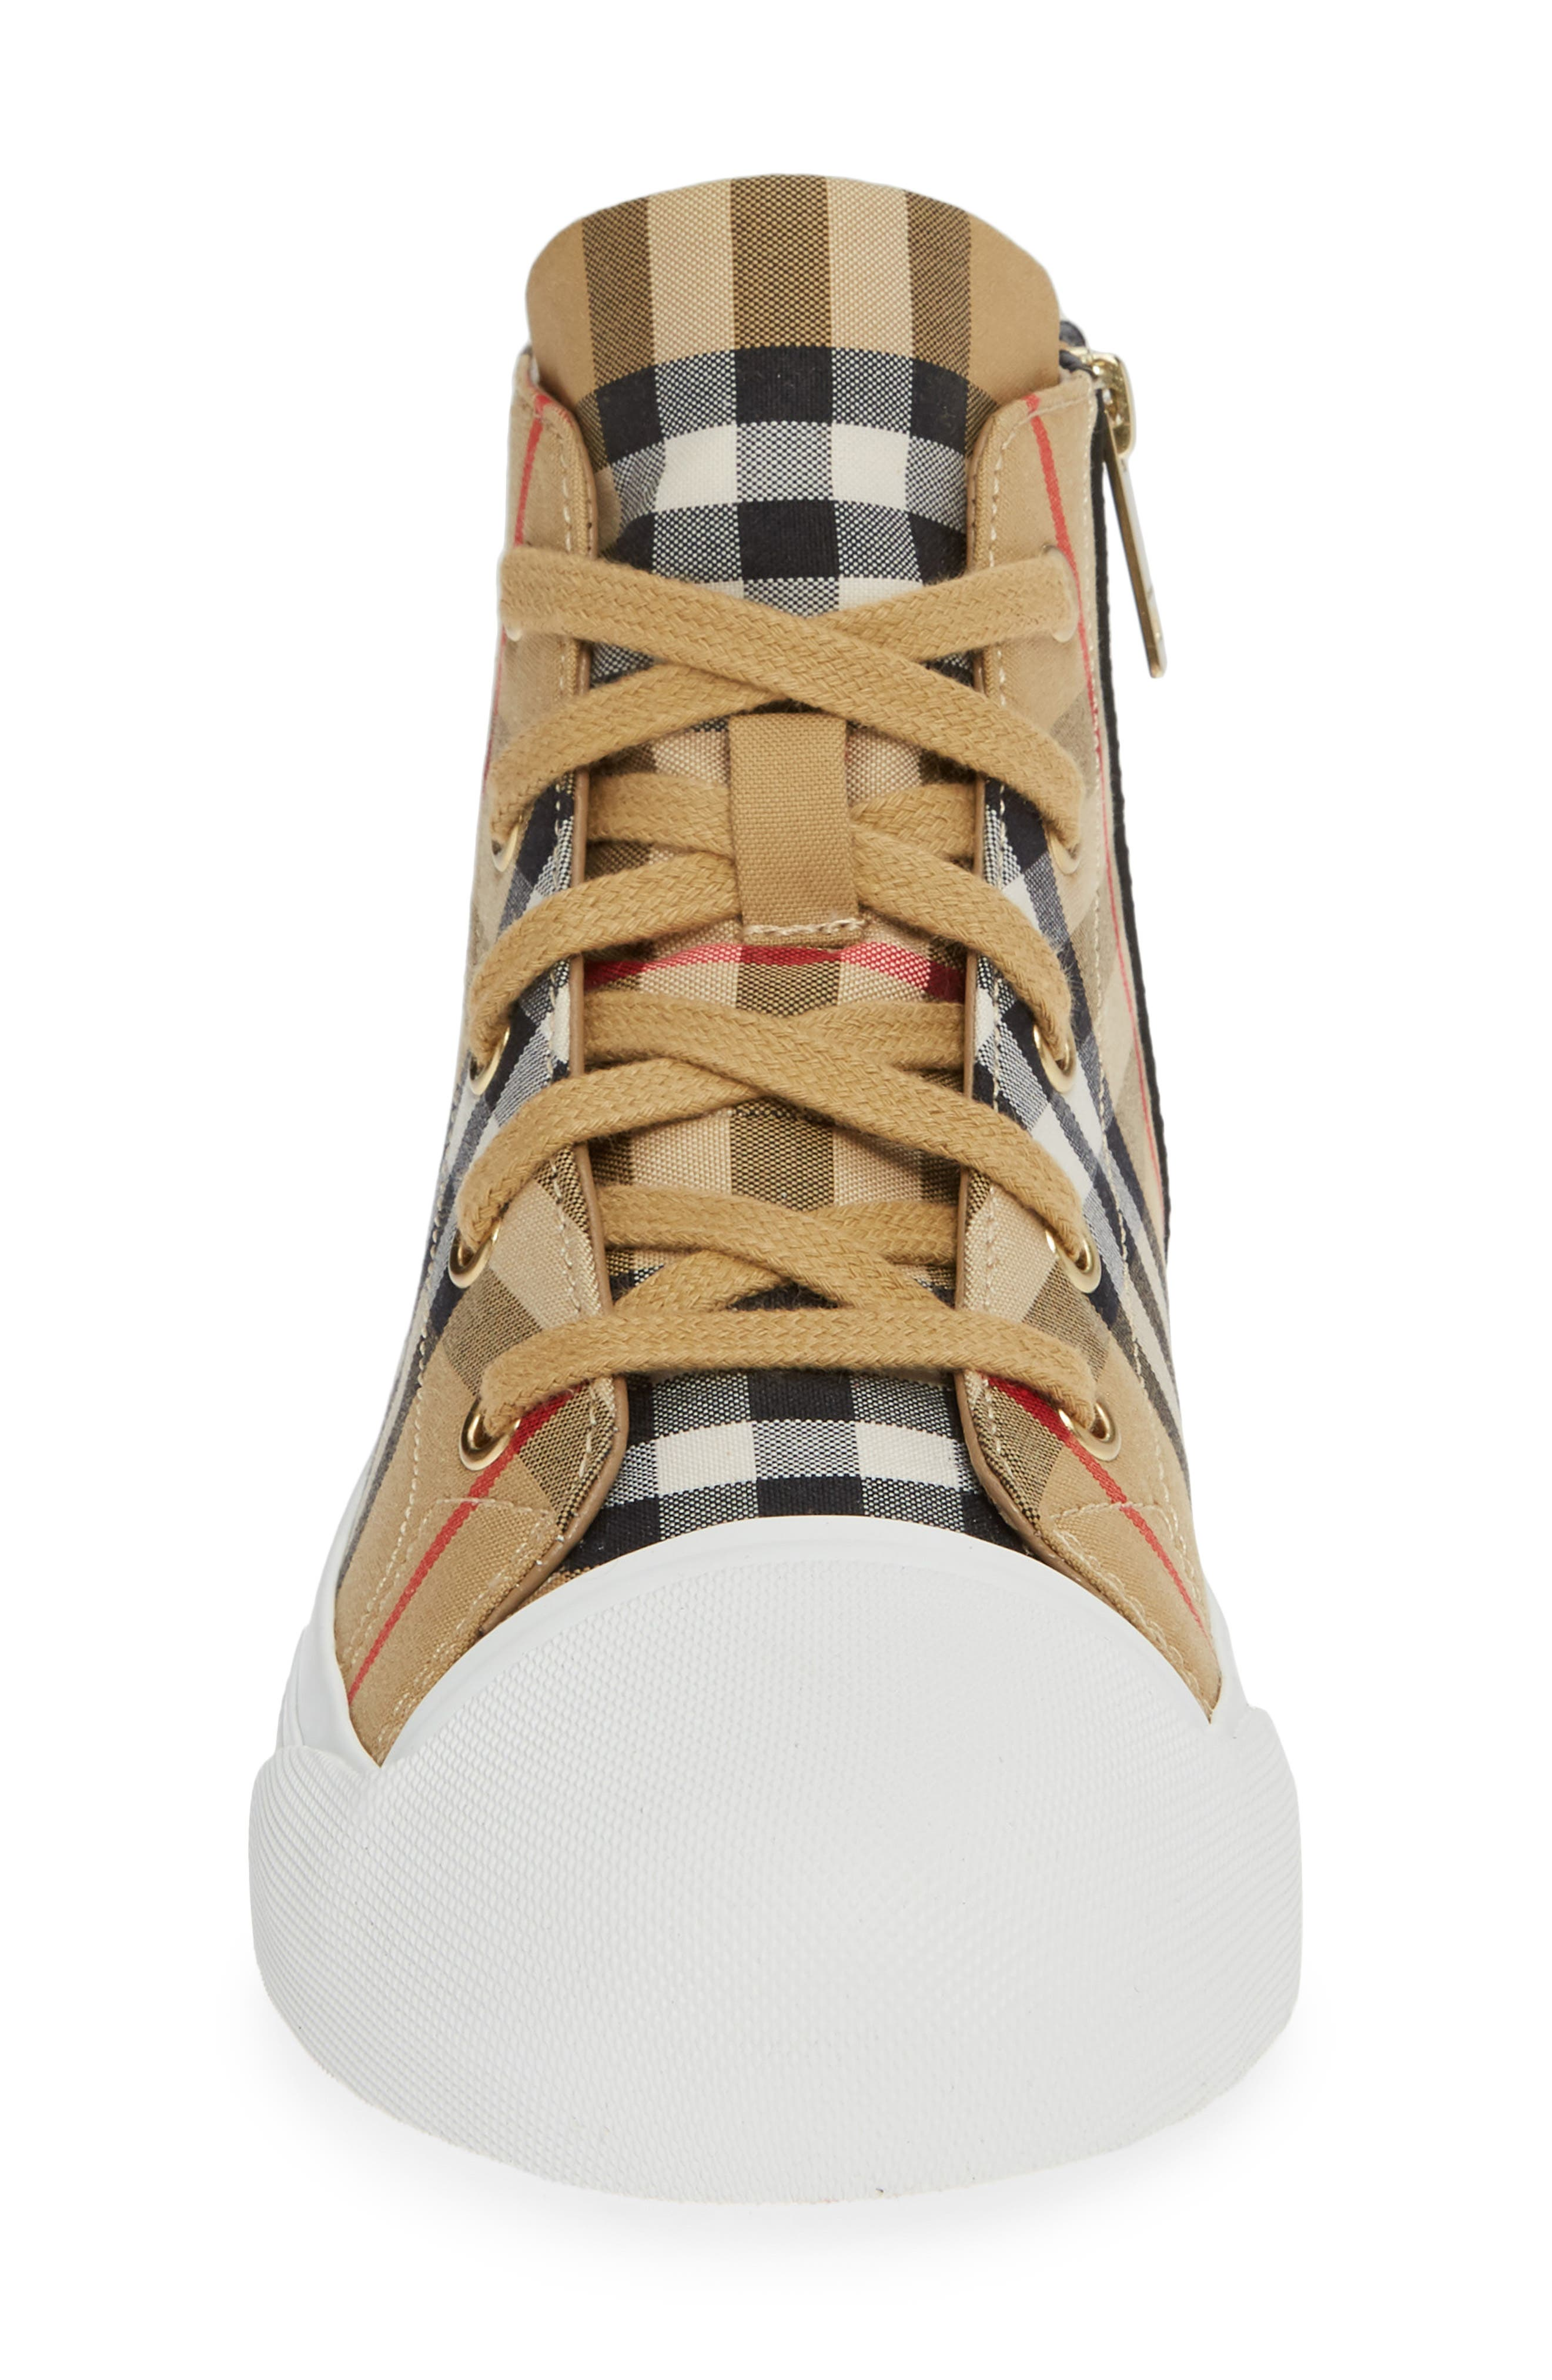 BURBERRY, Belford High-Top Sneaker, Alternate thumbnail 4, color, ANTIQUE YELLOW/ OPTIC WHITE